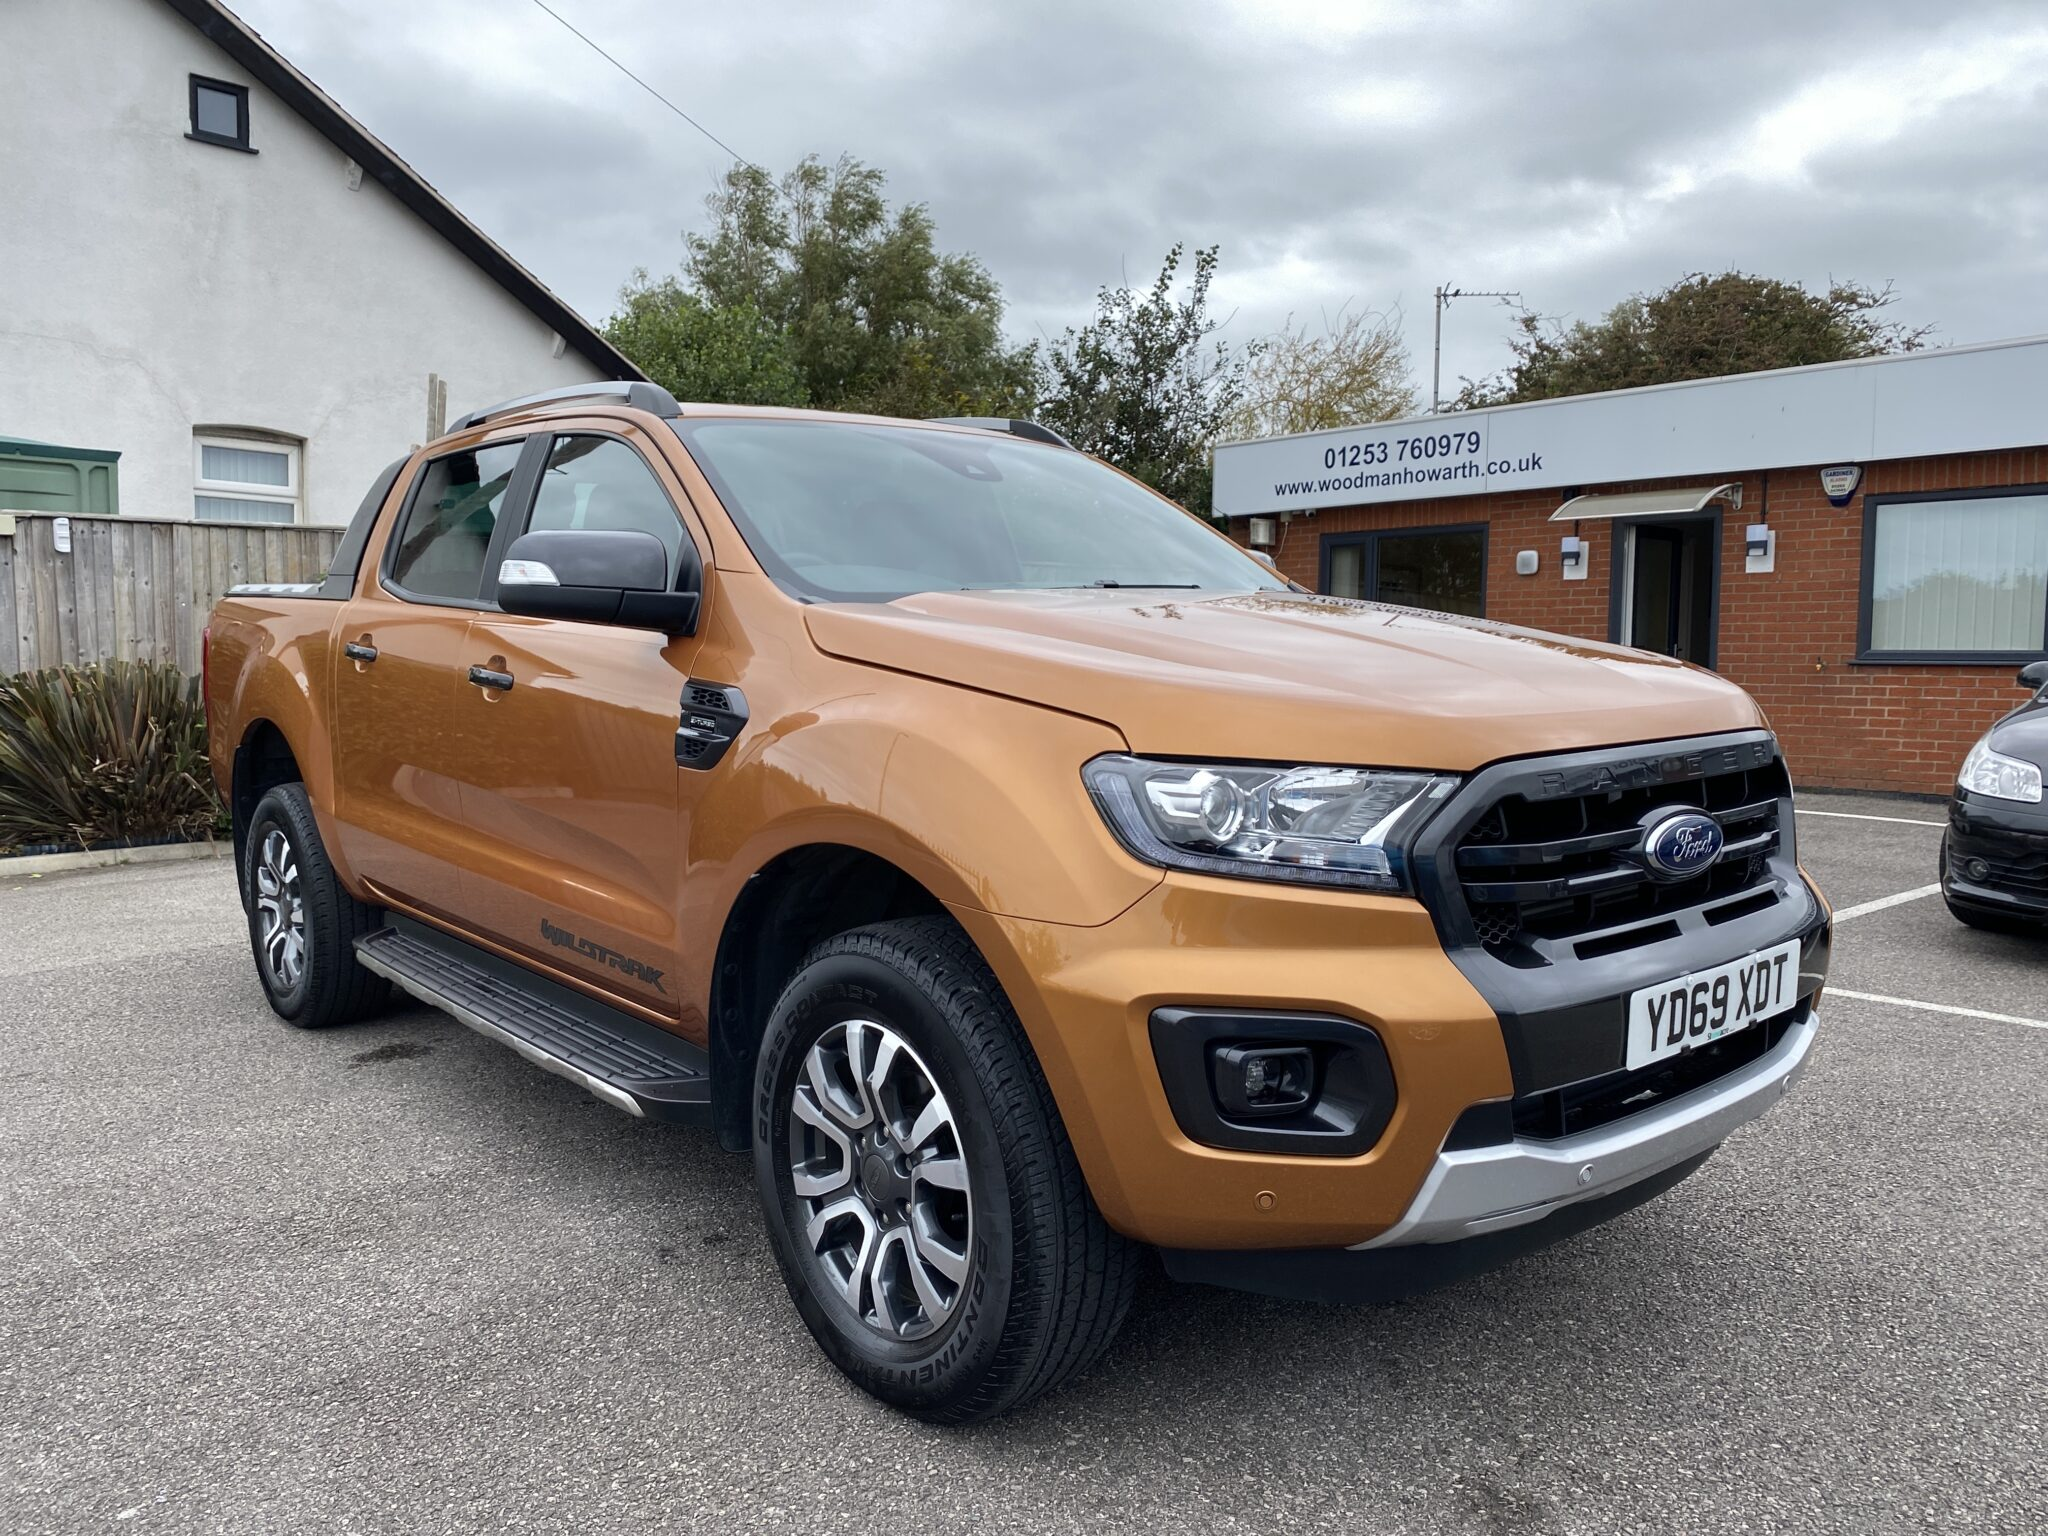 2019 69 FORD RANGER 2.0 ECO WILDTRAK AUTO PICKUP 1 Owner Pristine Example Only 7K Miles